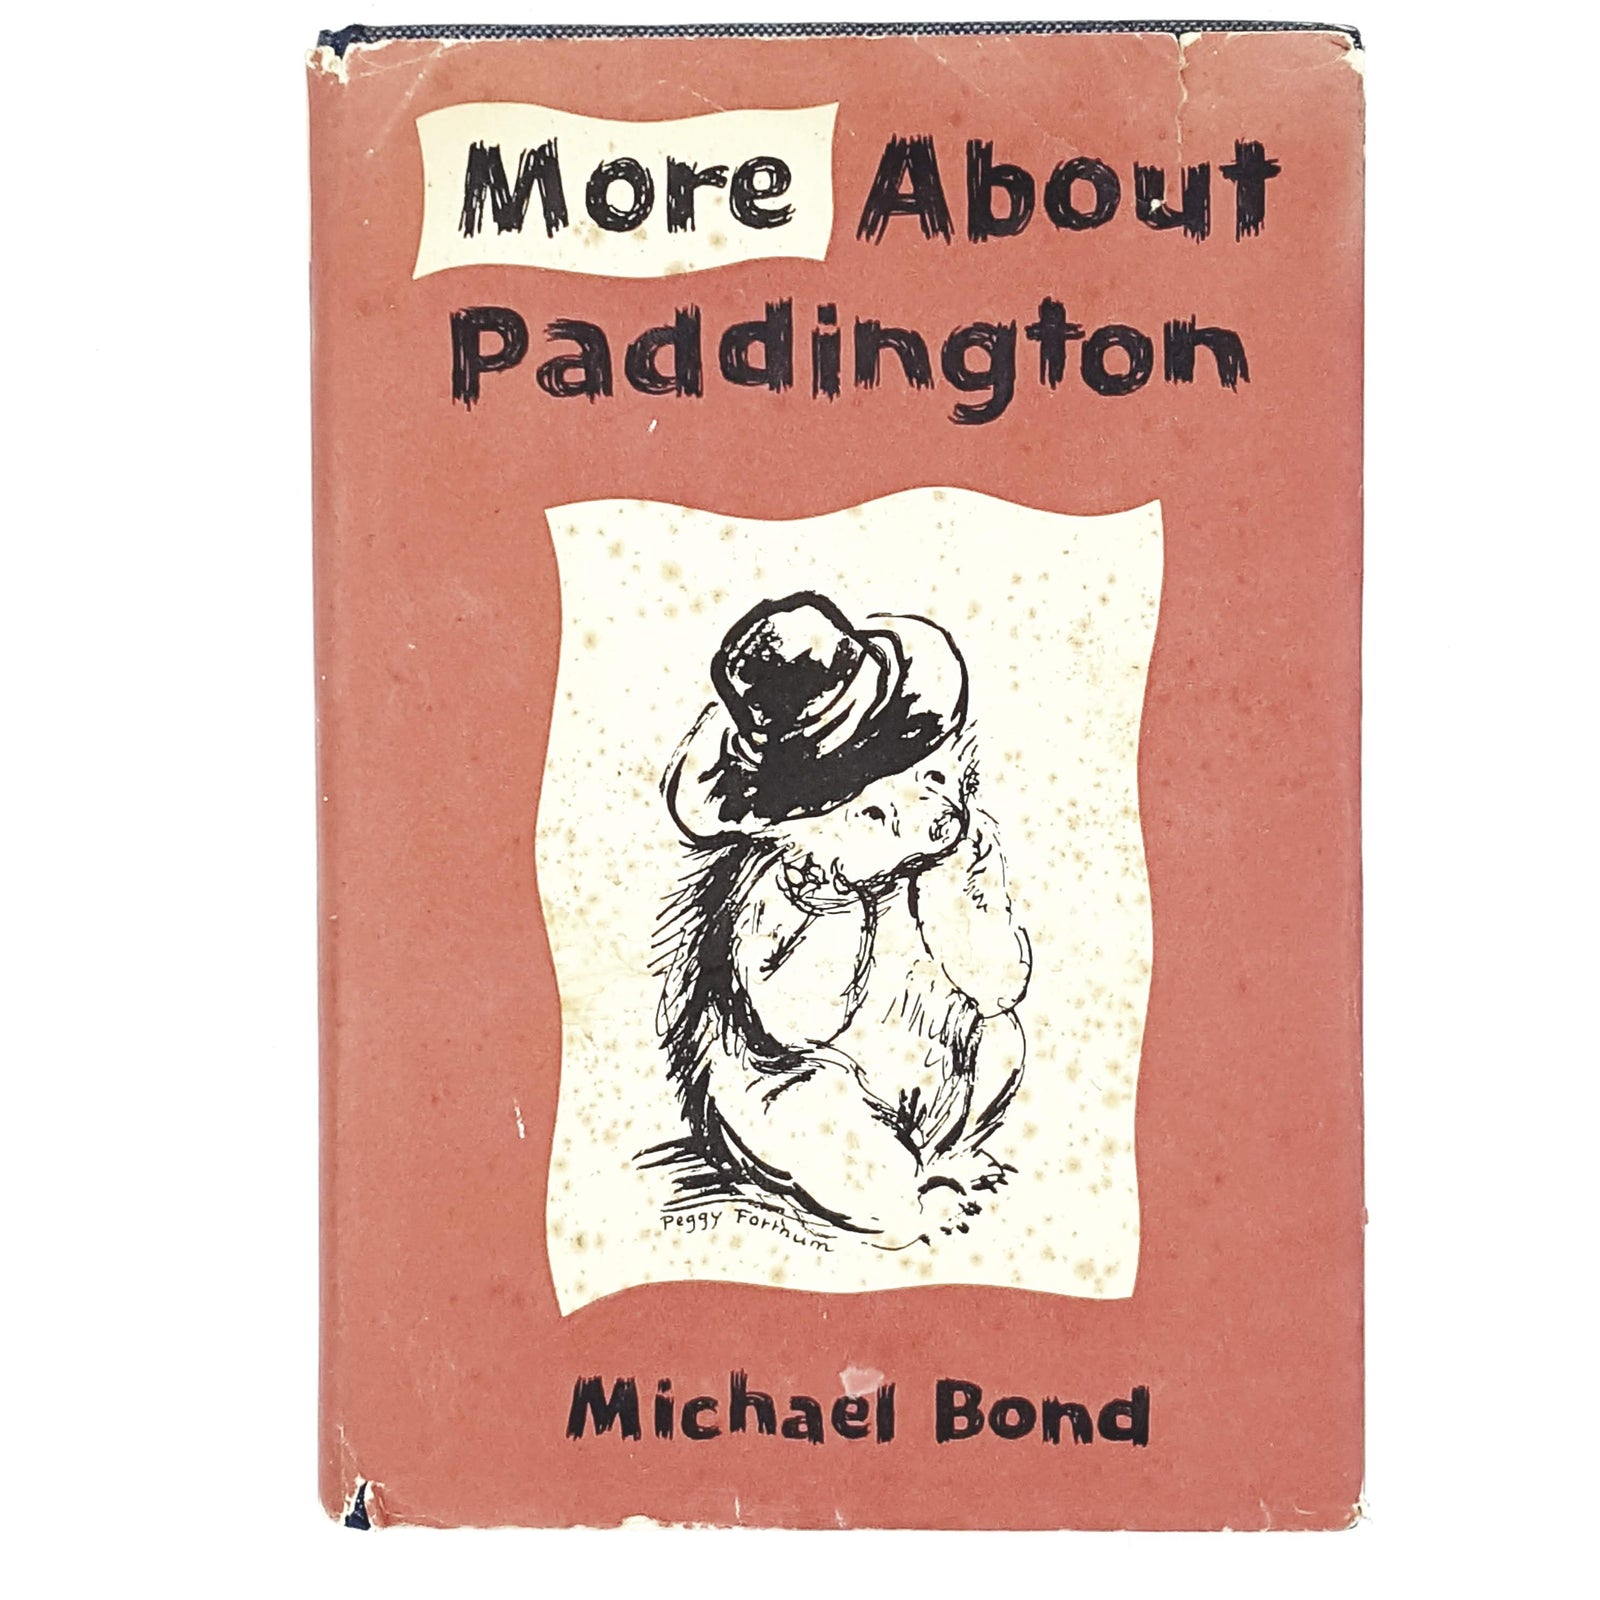 More About Paddington by Michael Bond 1968